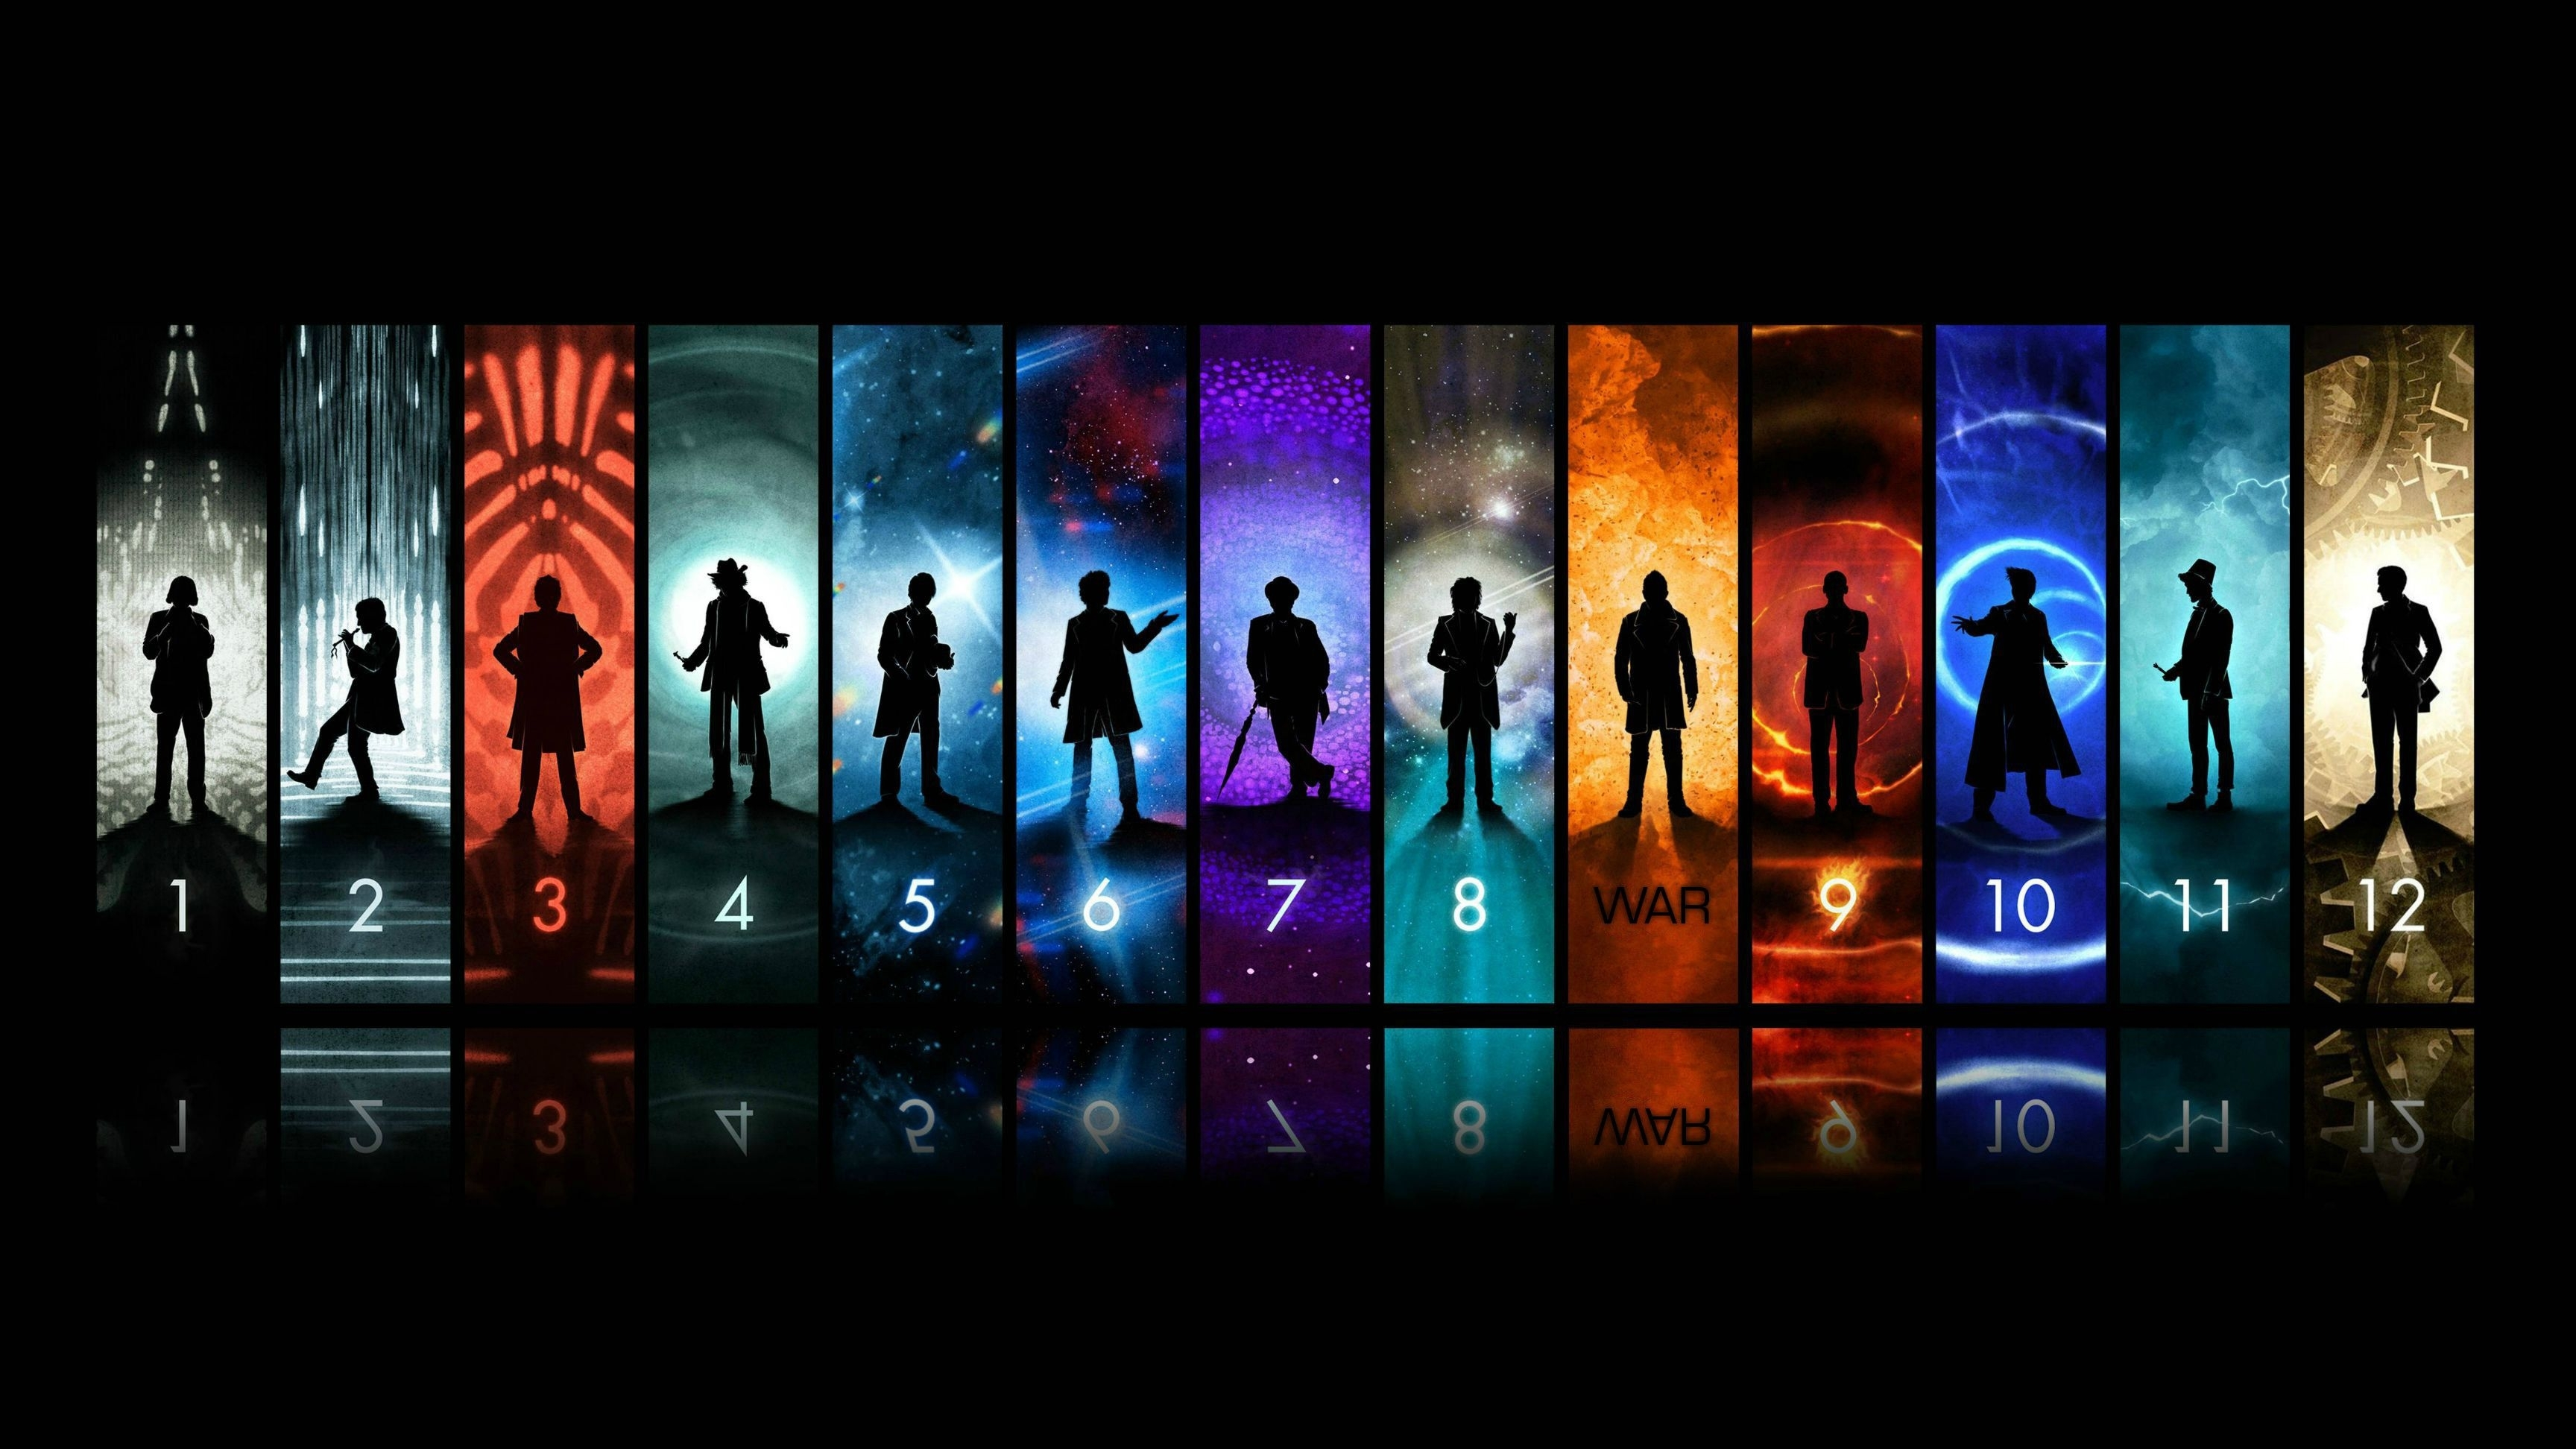 doctor who wallpaper (1 through 12 with war) | images